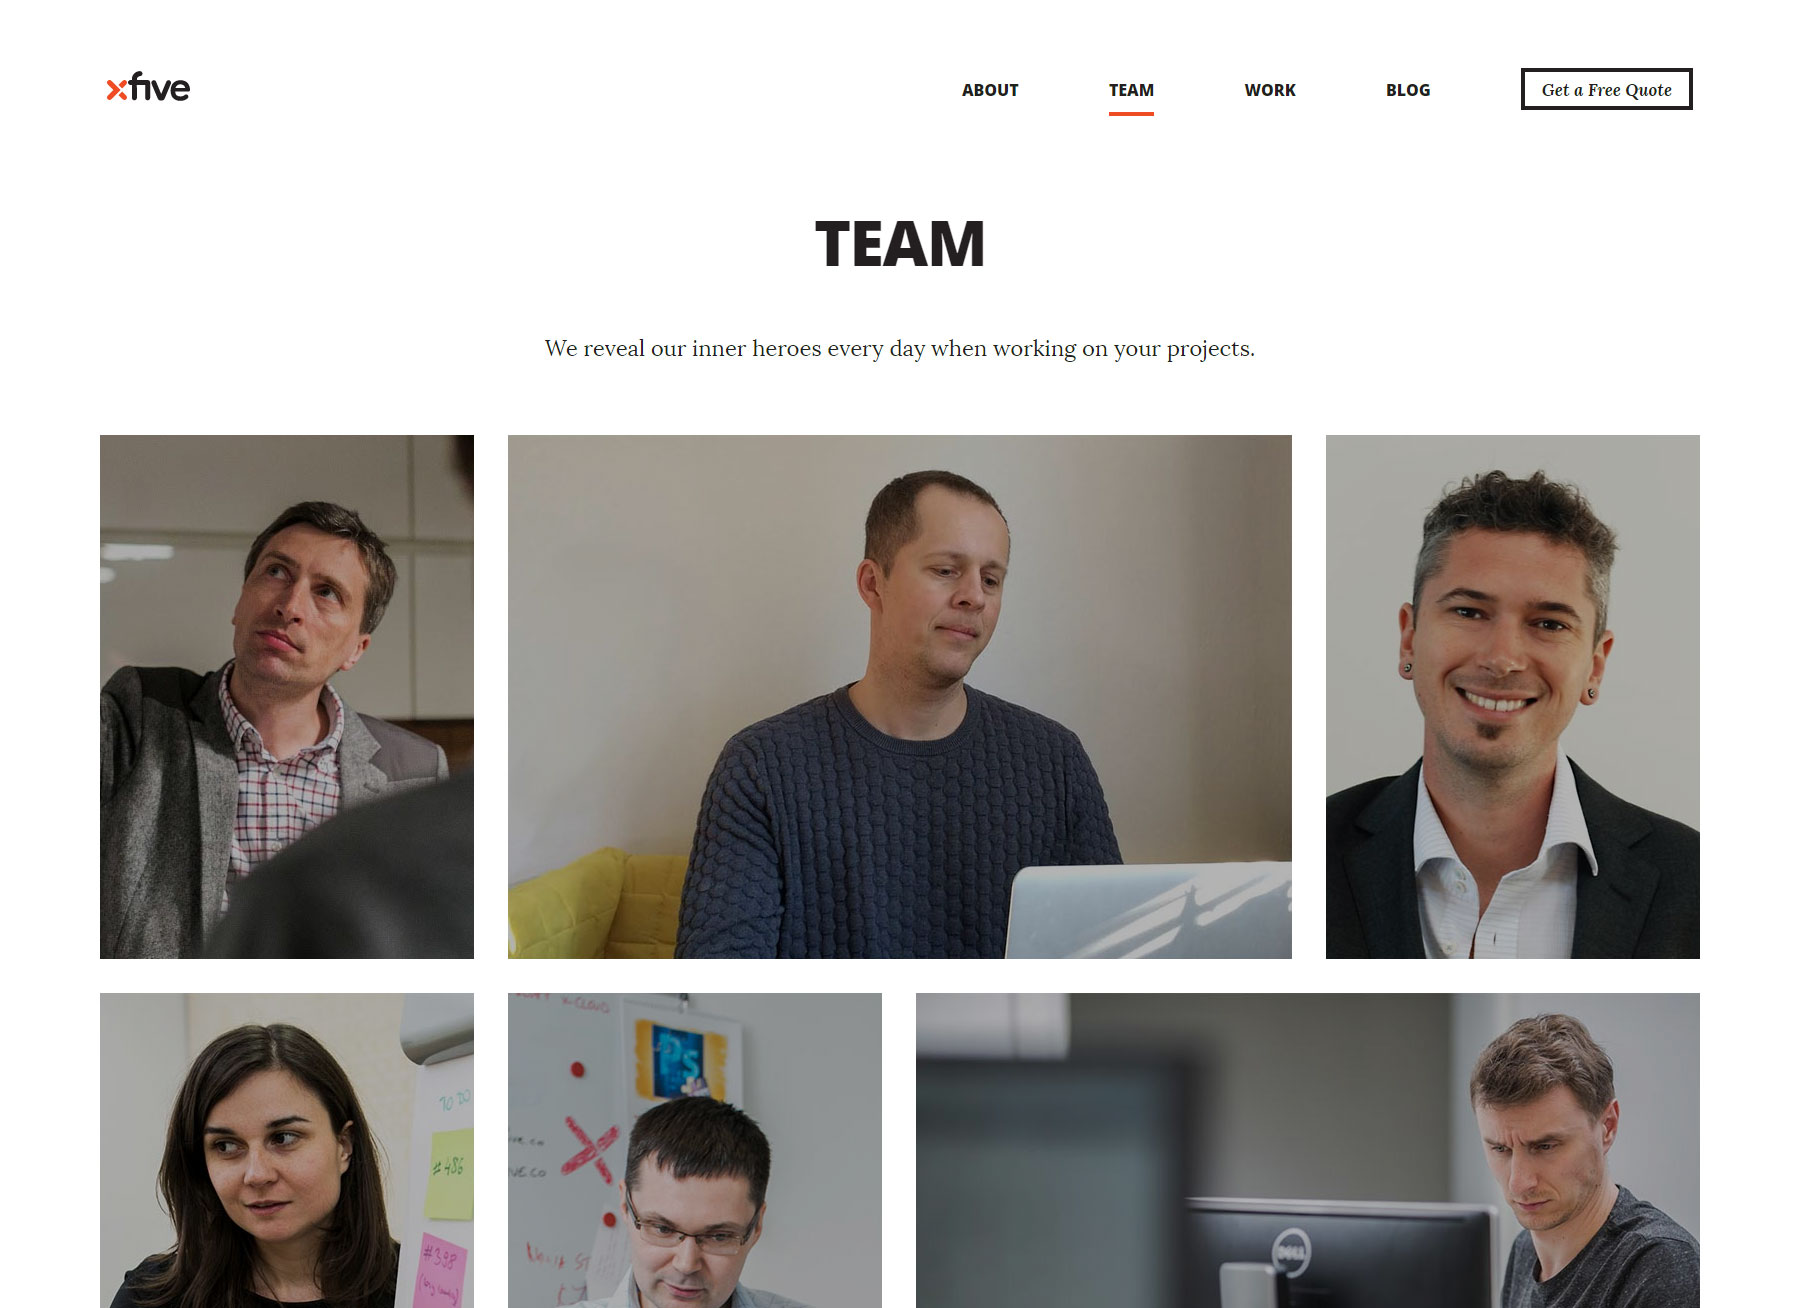 Xfive - Developers who care - Website of the Day